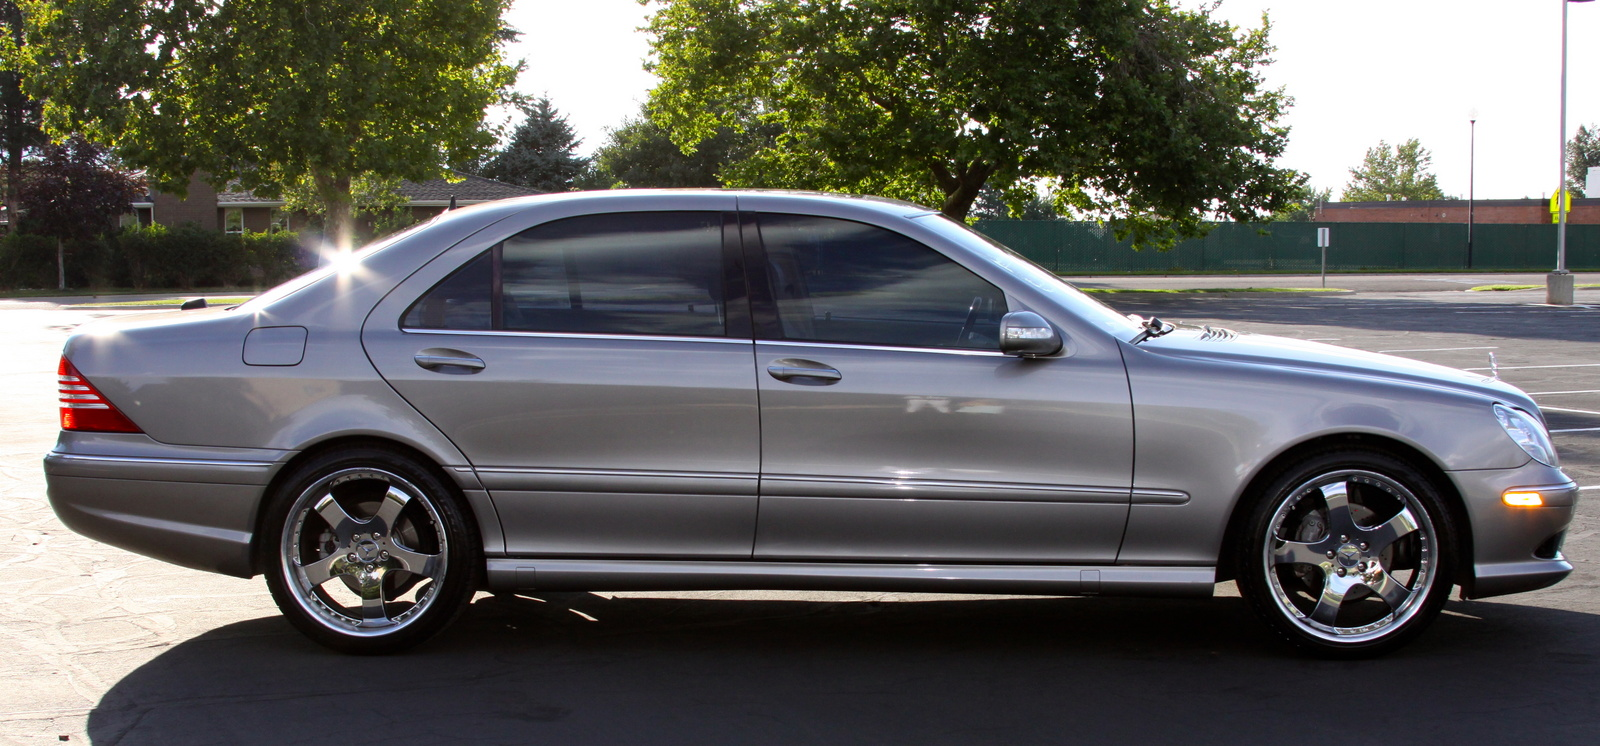 2005 mercedes benz s class pictures cargurus for 2001 mercedes benz s500 specs